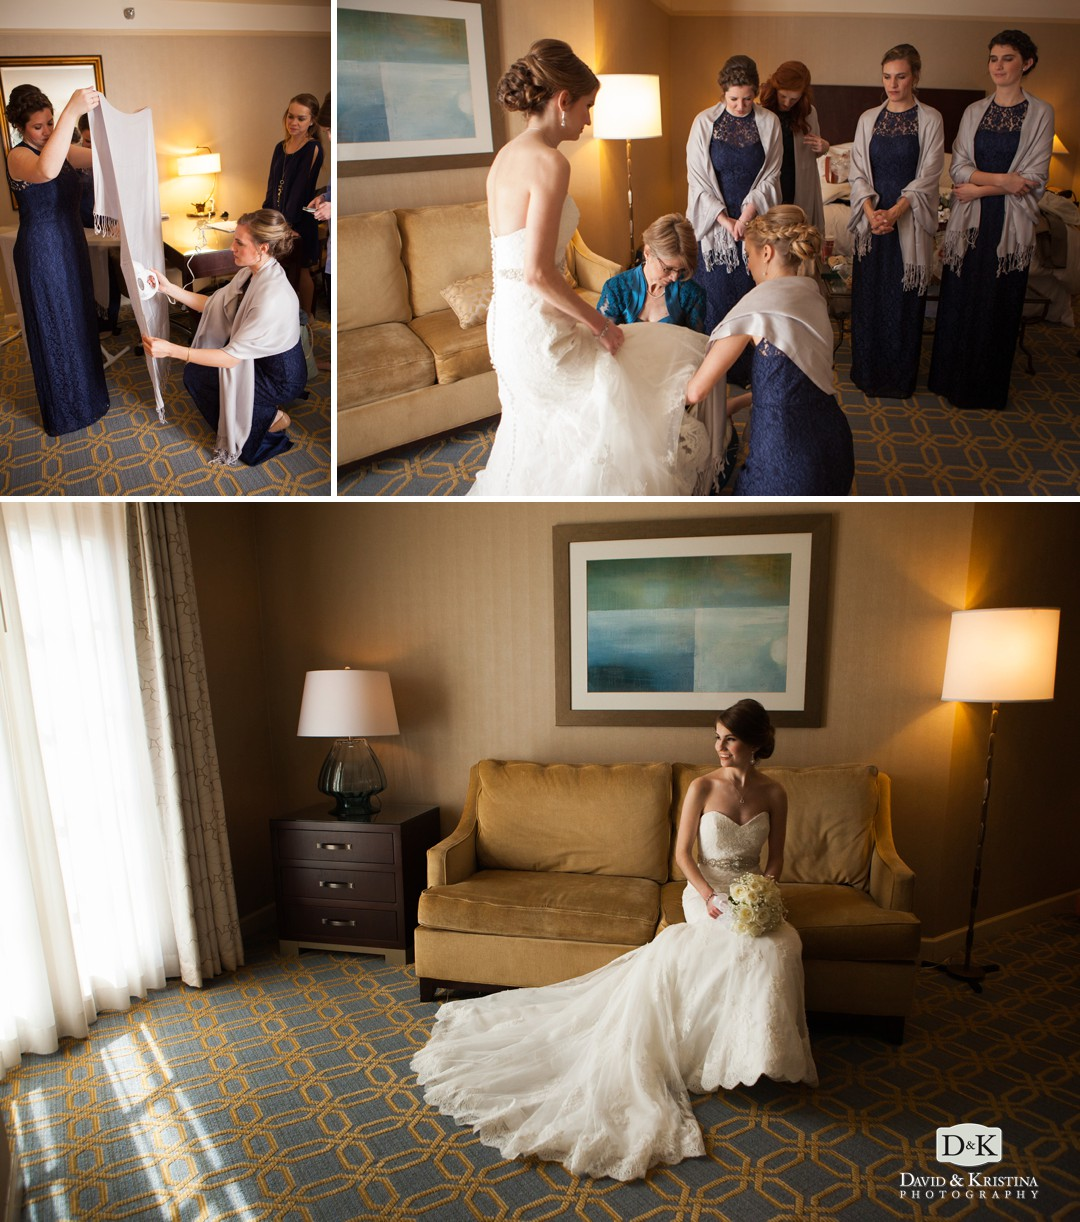 The Westin Poinsett is a great hotel and wedding venue for a bride to get ready